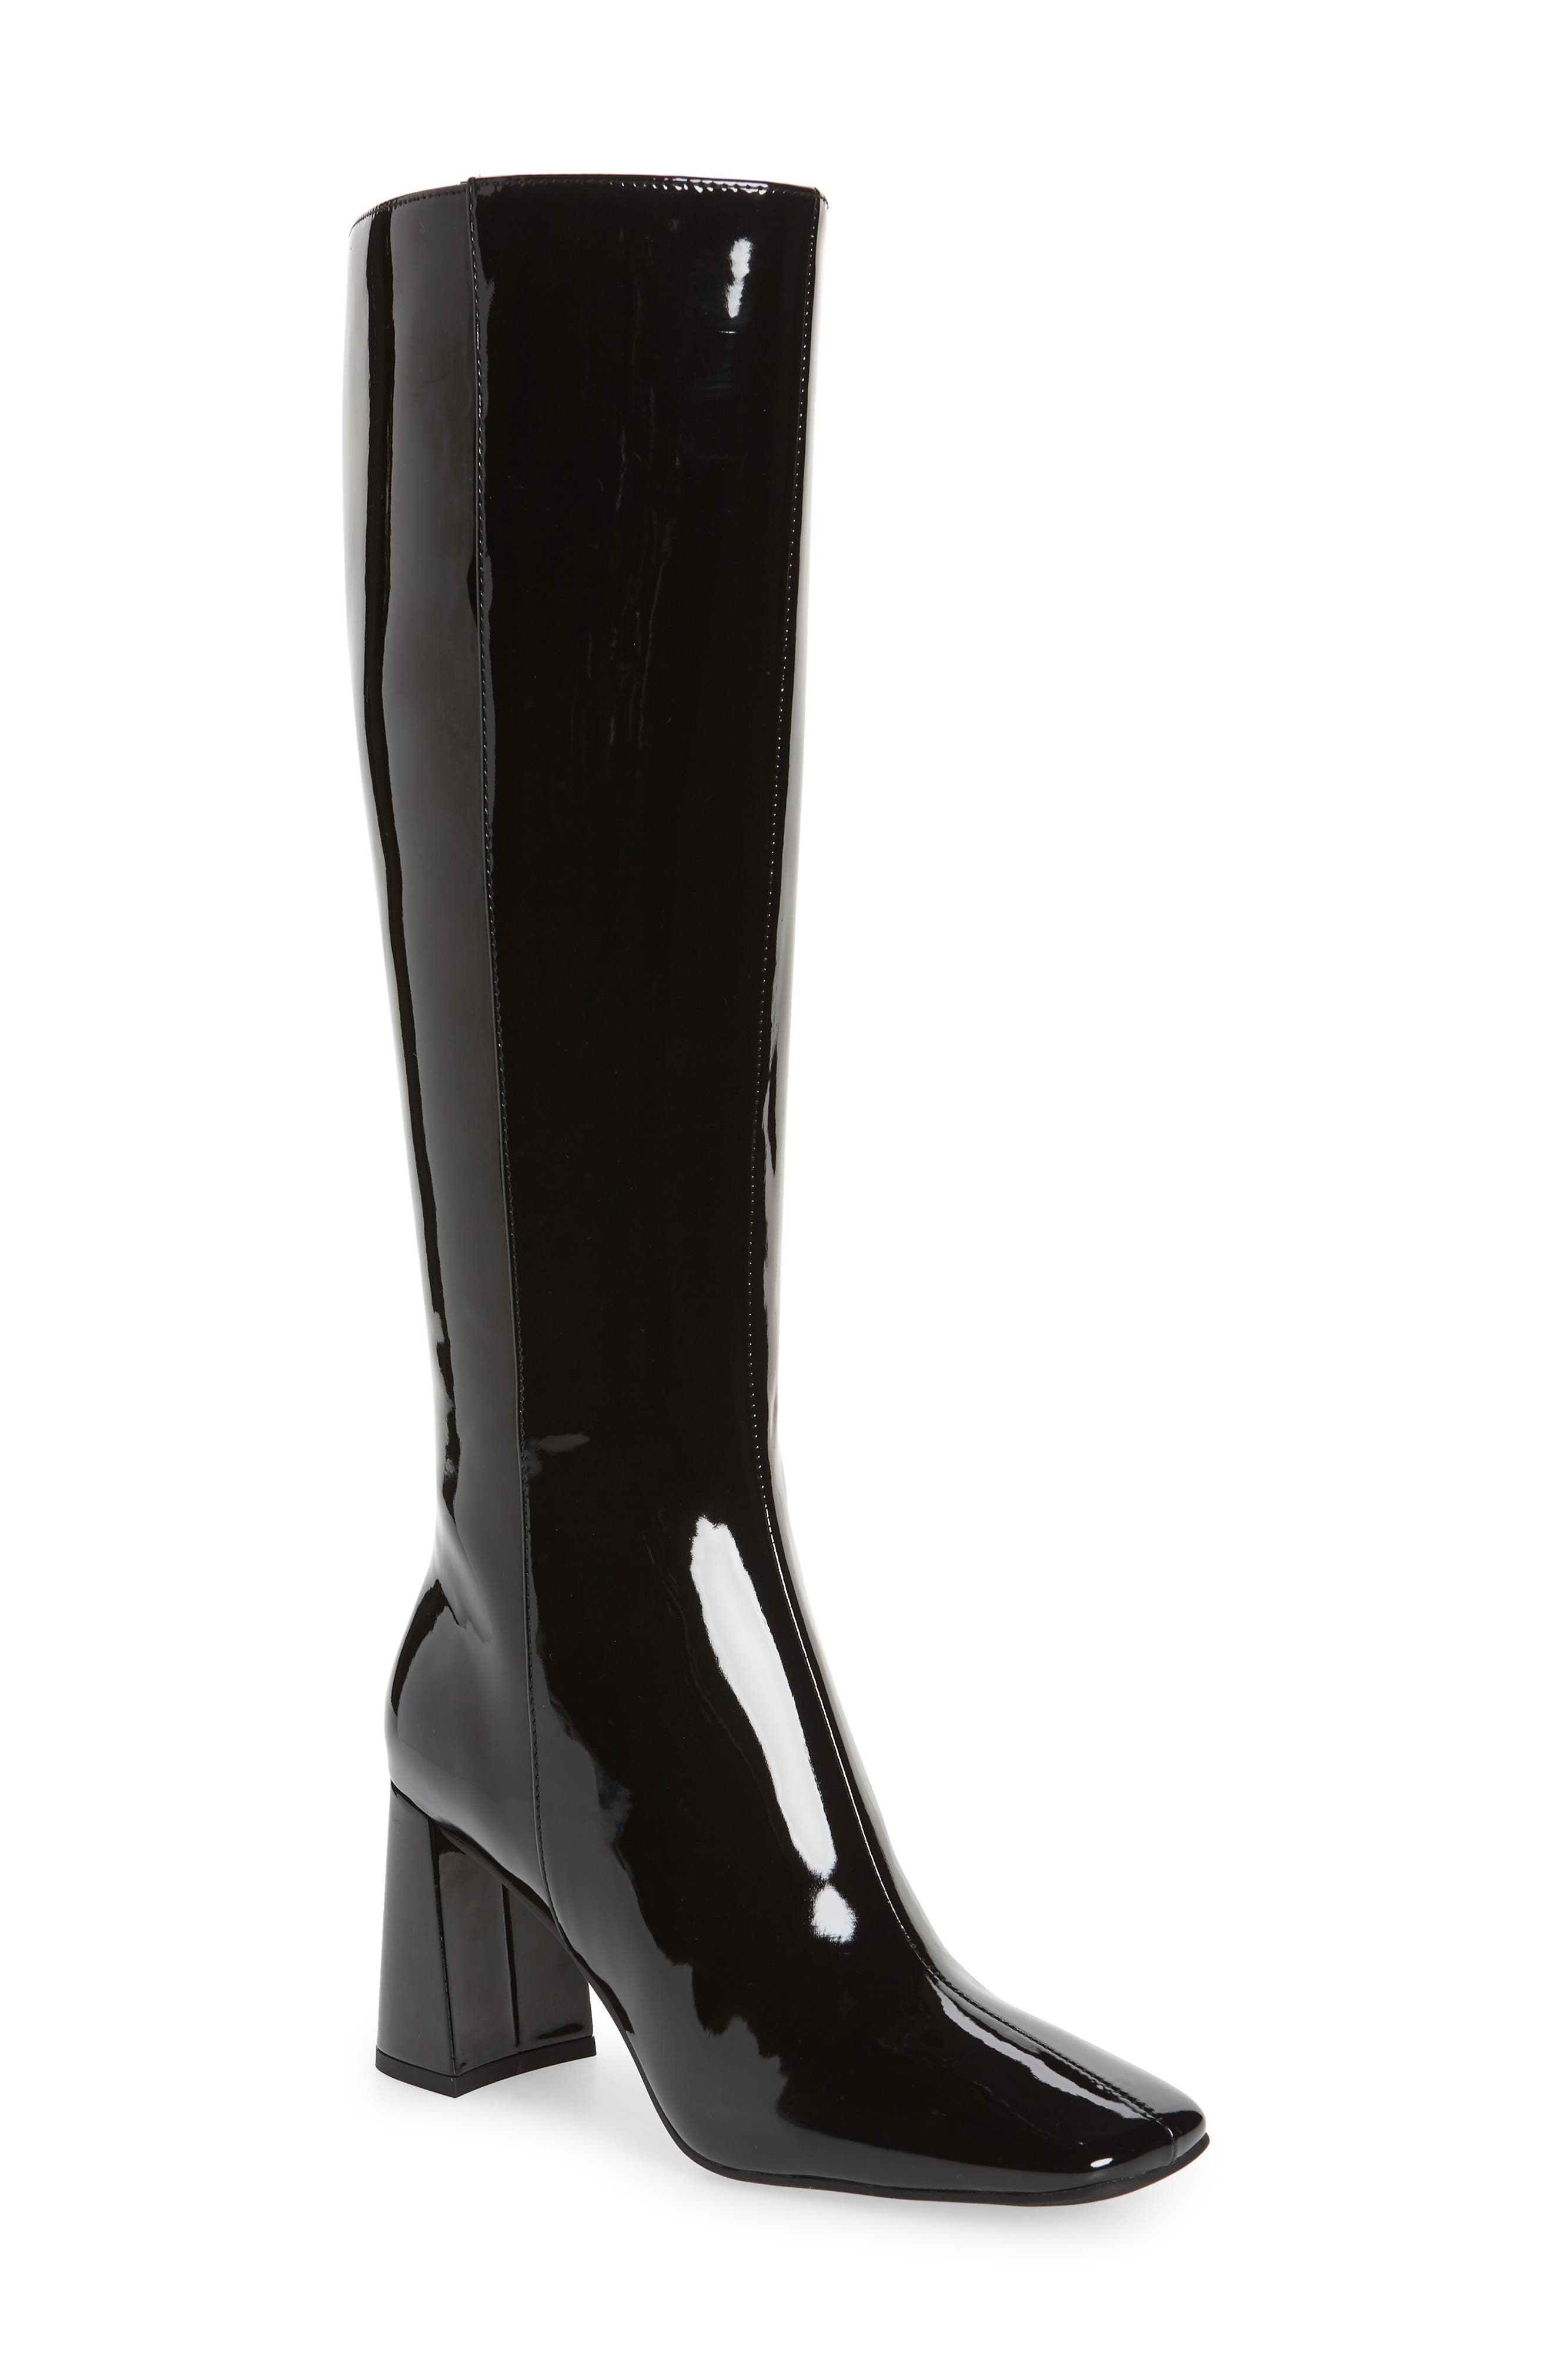 A square toe and chunky flared heel bring modern attitude to a sleek knee-high boot featuring simple styling for maximum versatility. Style Name: Jeffrey Campbell Patti Knee High Boot (Women). Style Number: 6093554. Available in stores.